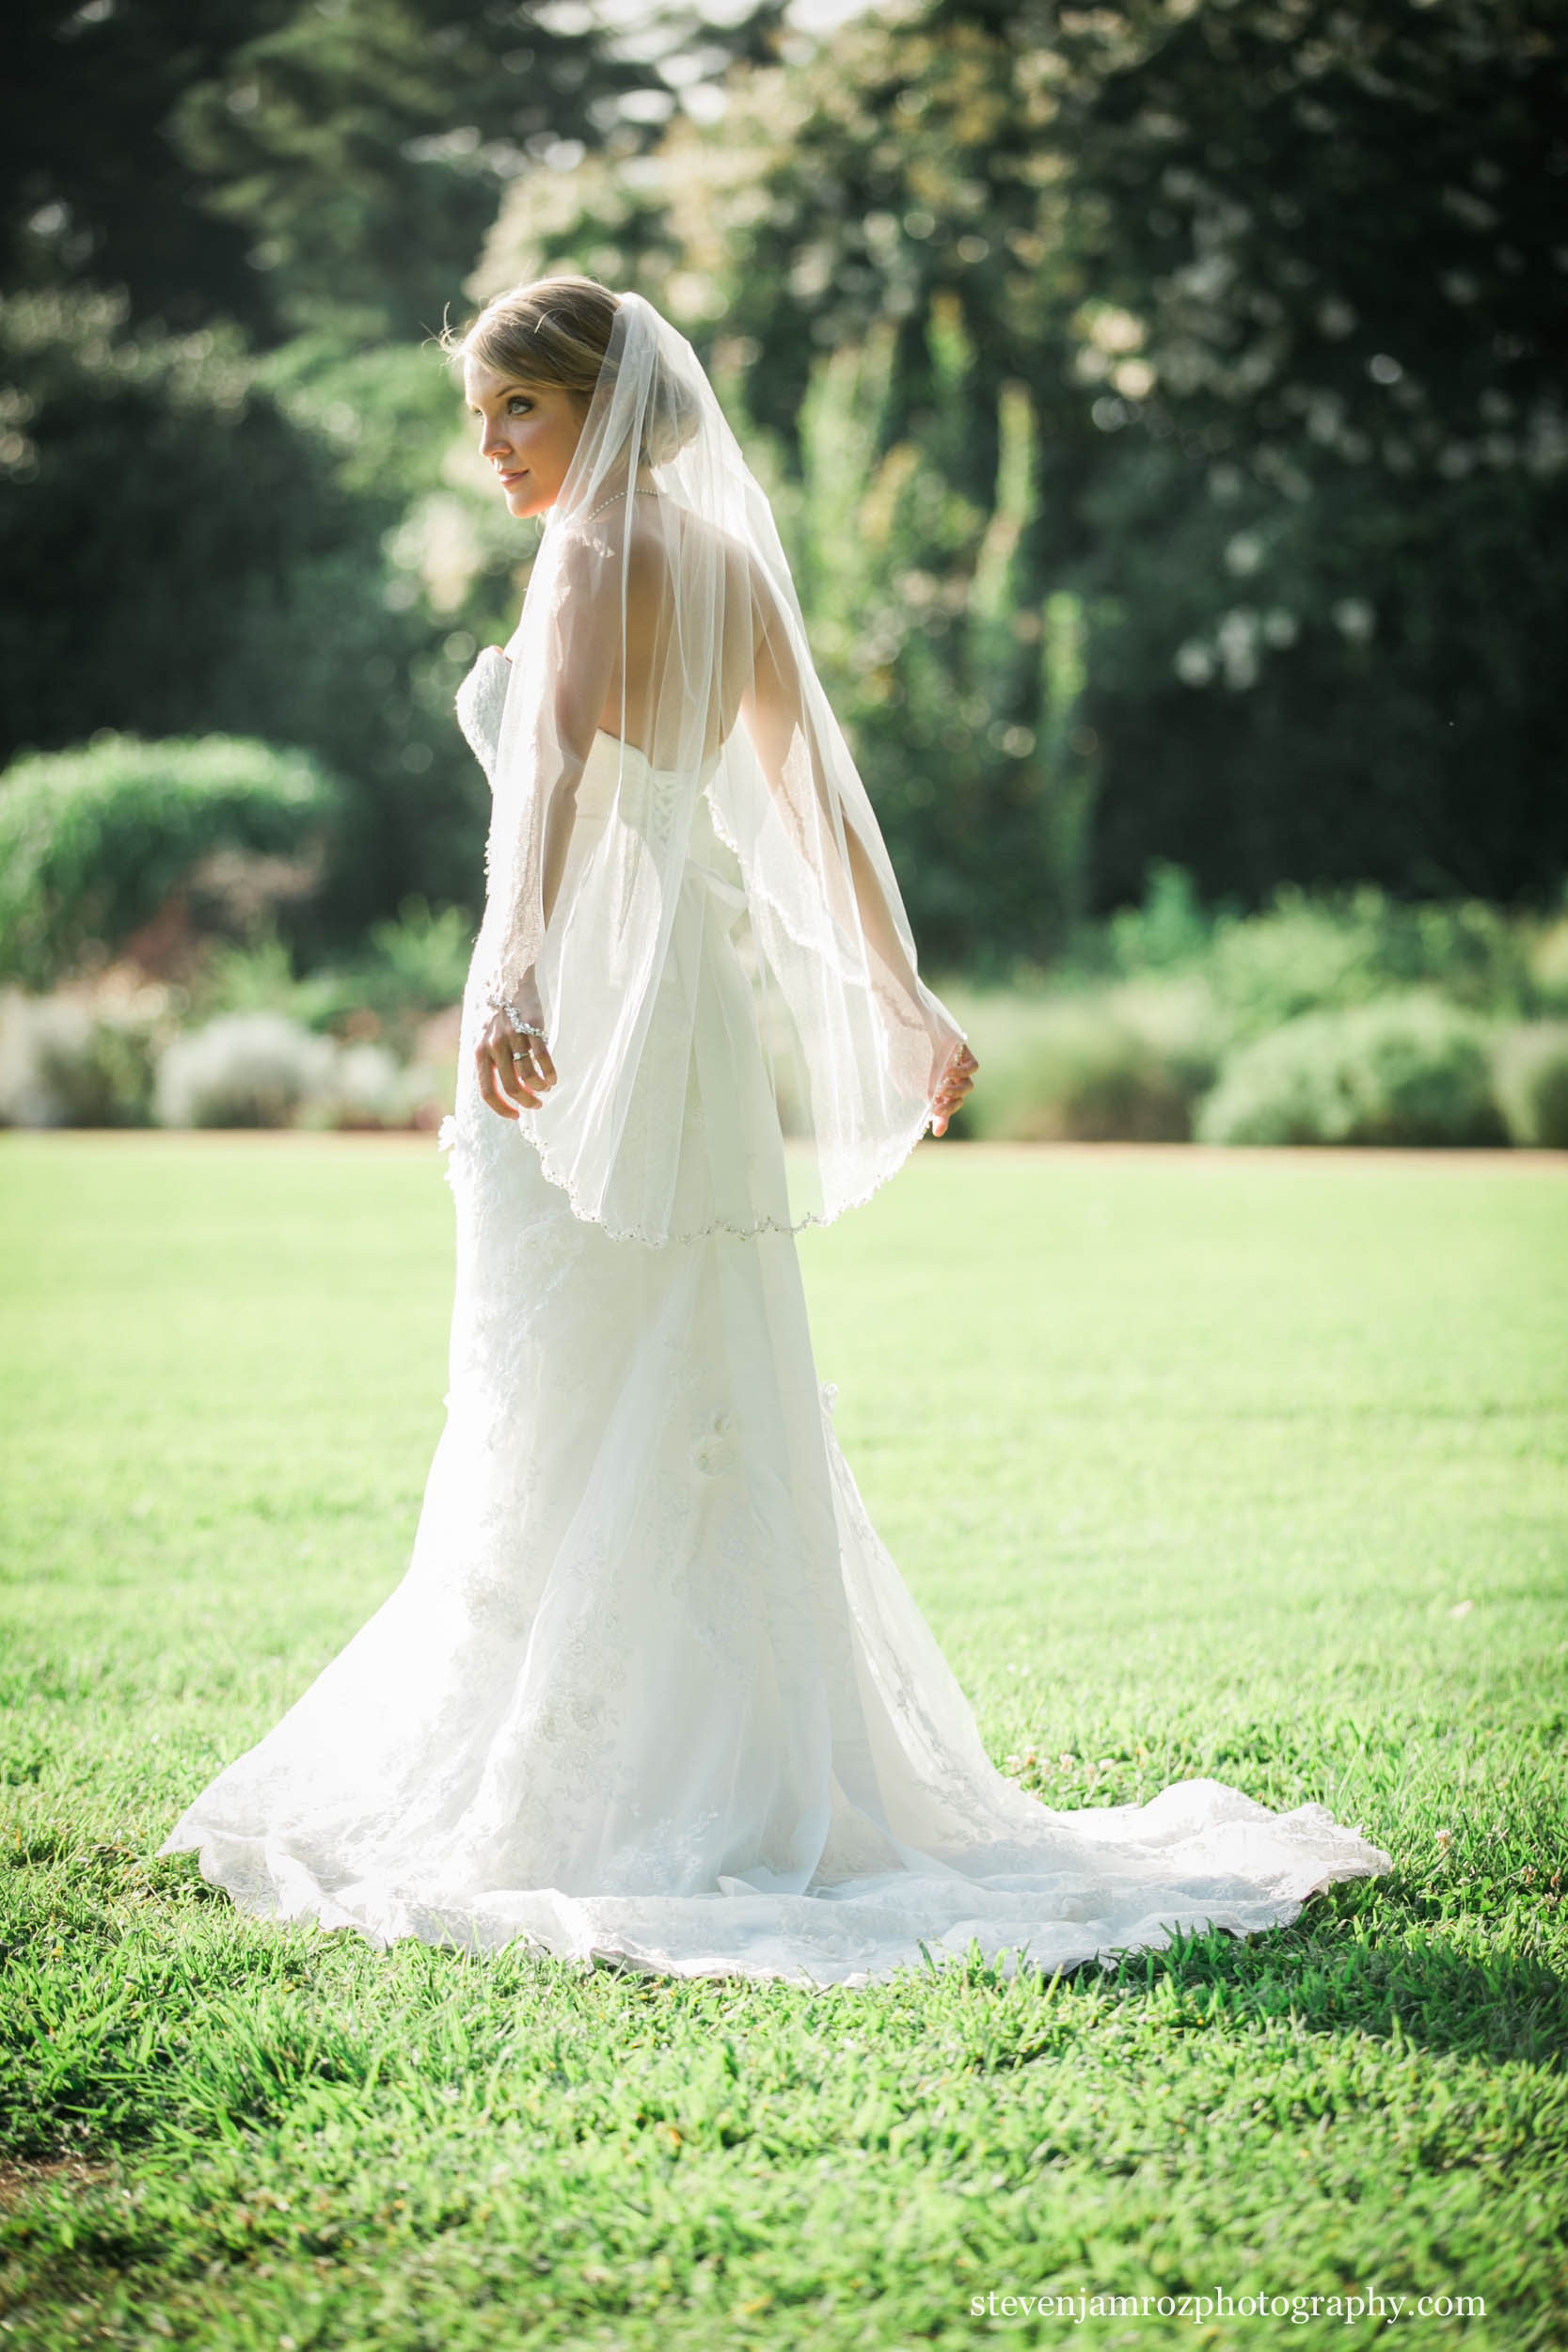 veil-bridal-photos-jc-raulston-wedding-steven-jamroz-photography-0023.jpg